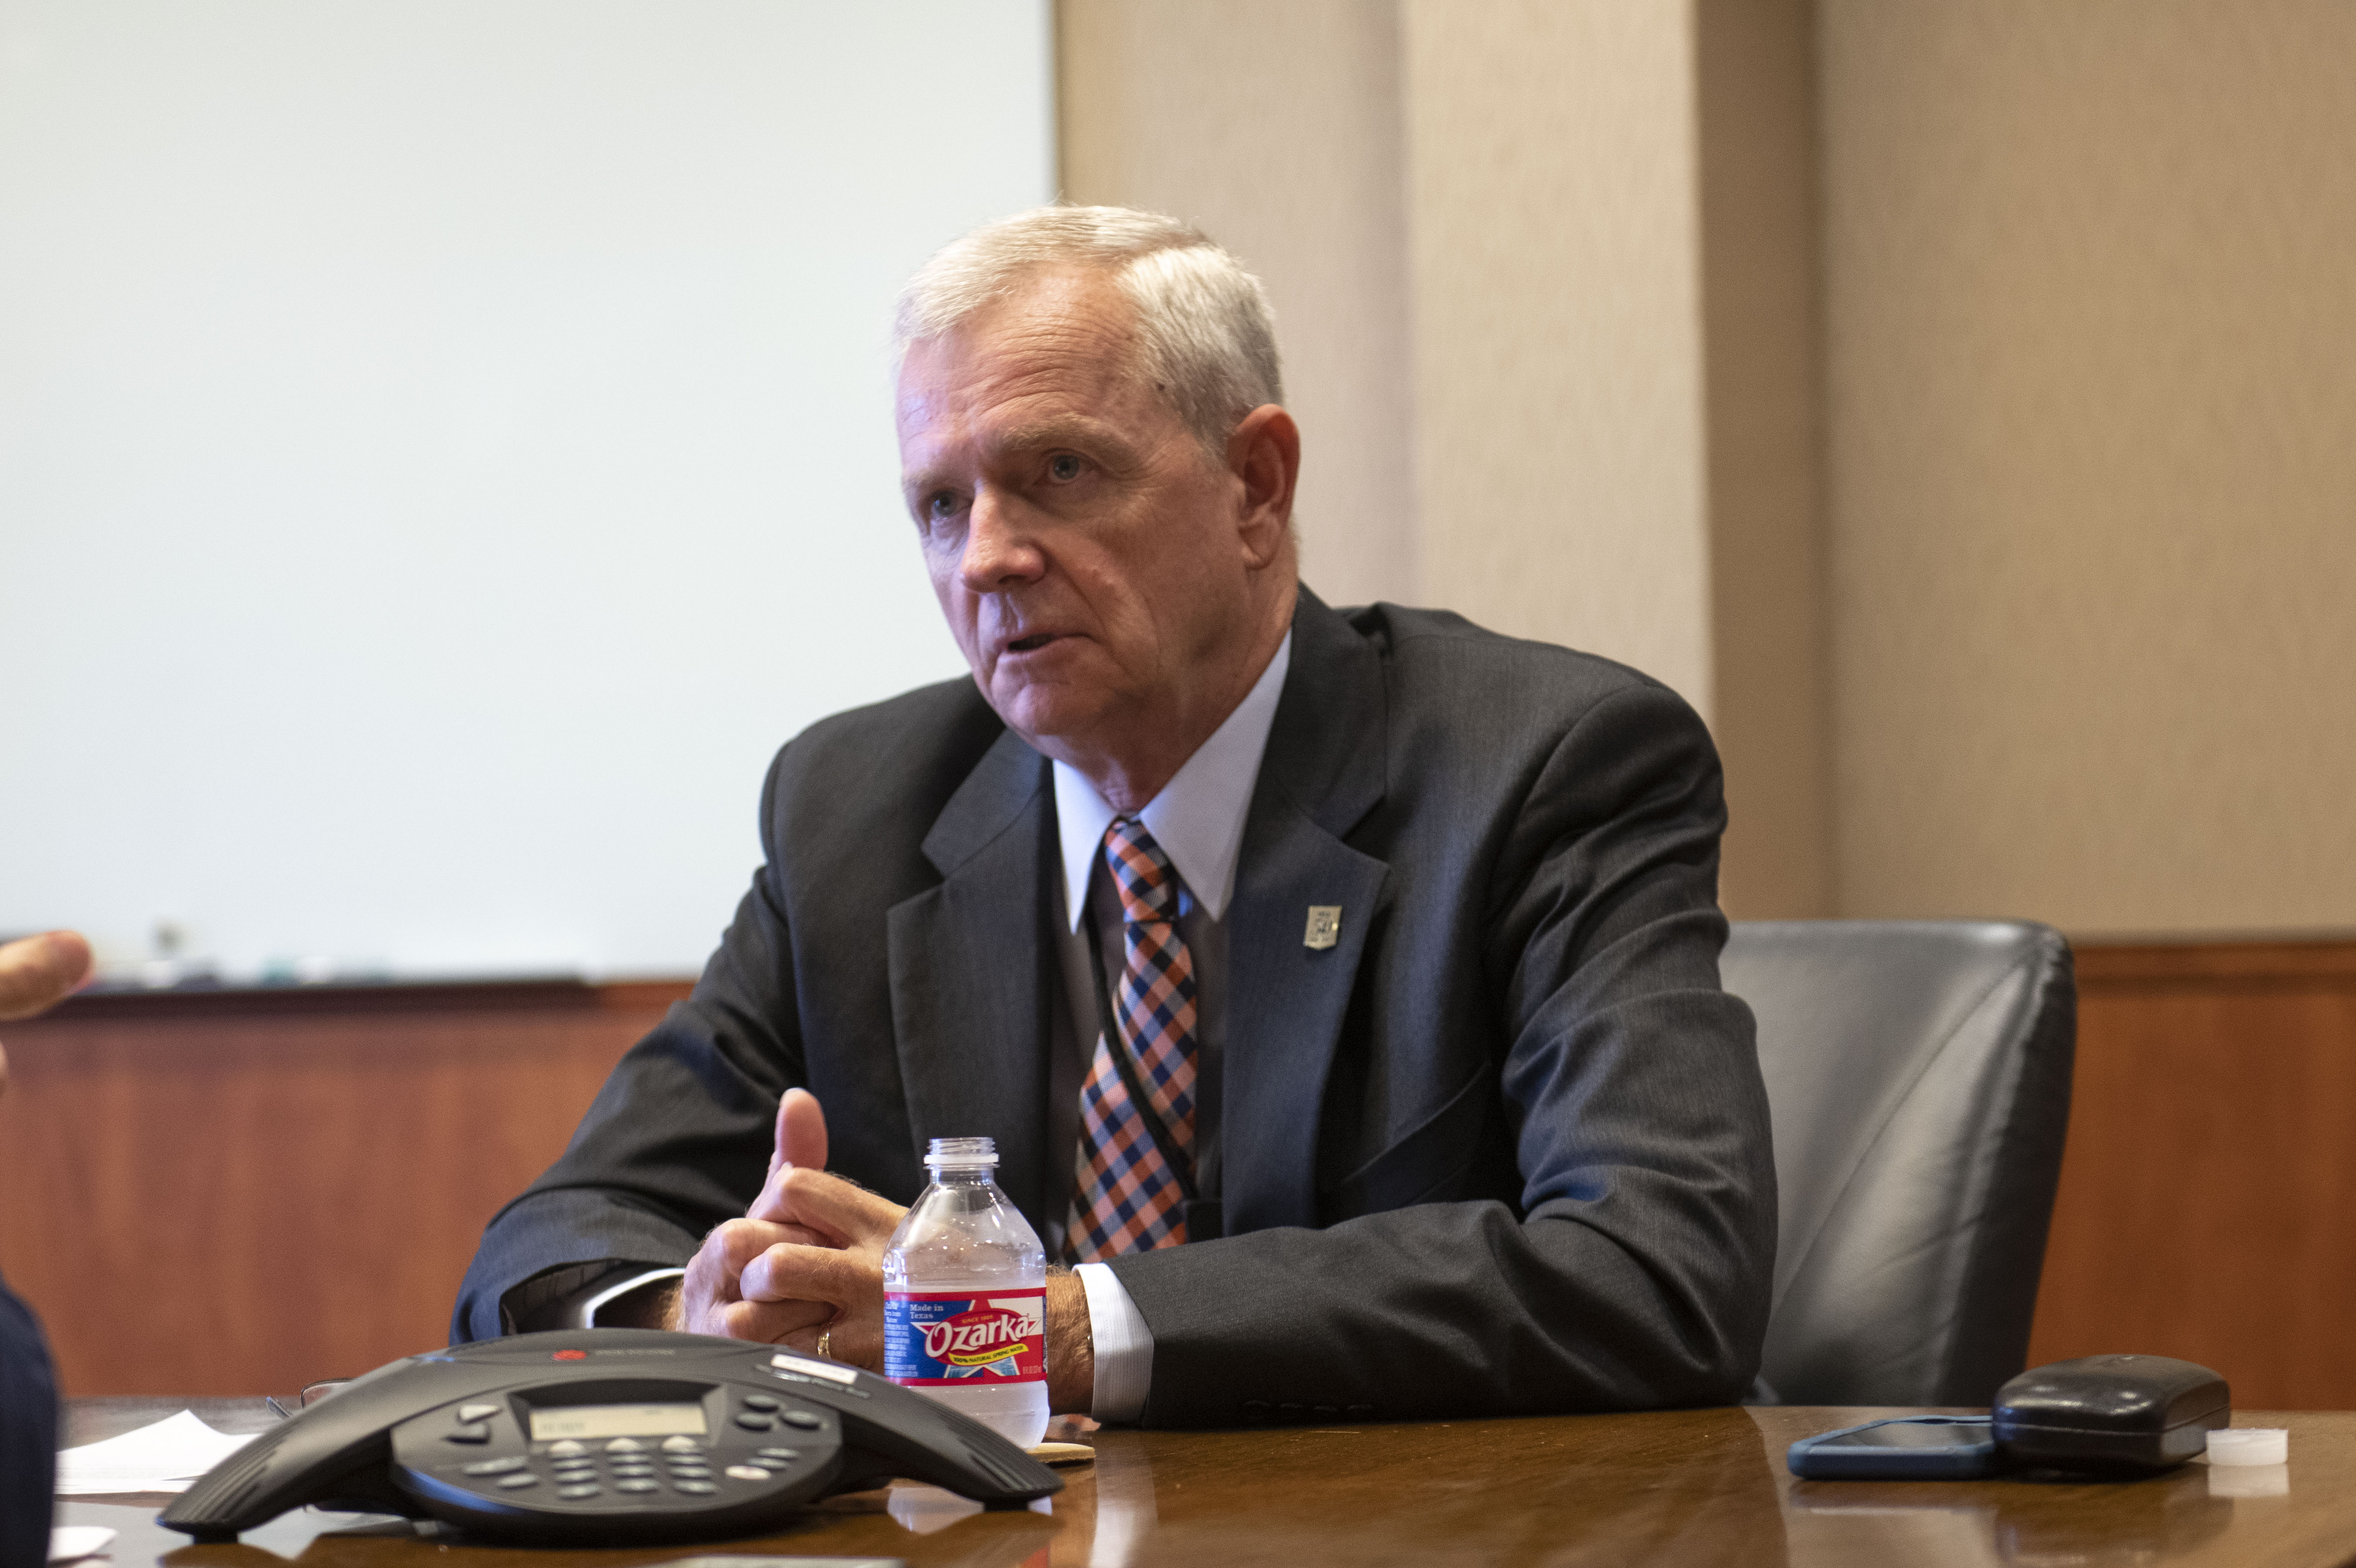 UTSA National Security Collaboration Center Director Guy Walsh Shares 100-Day Plan